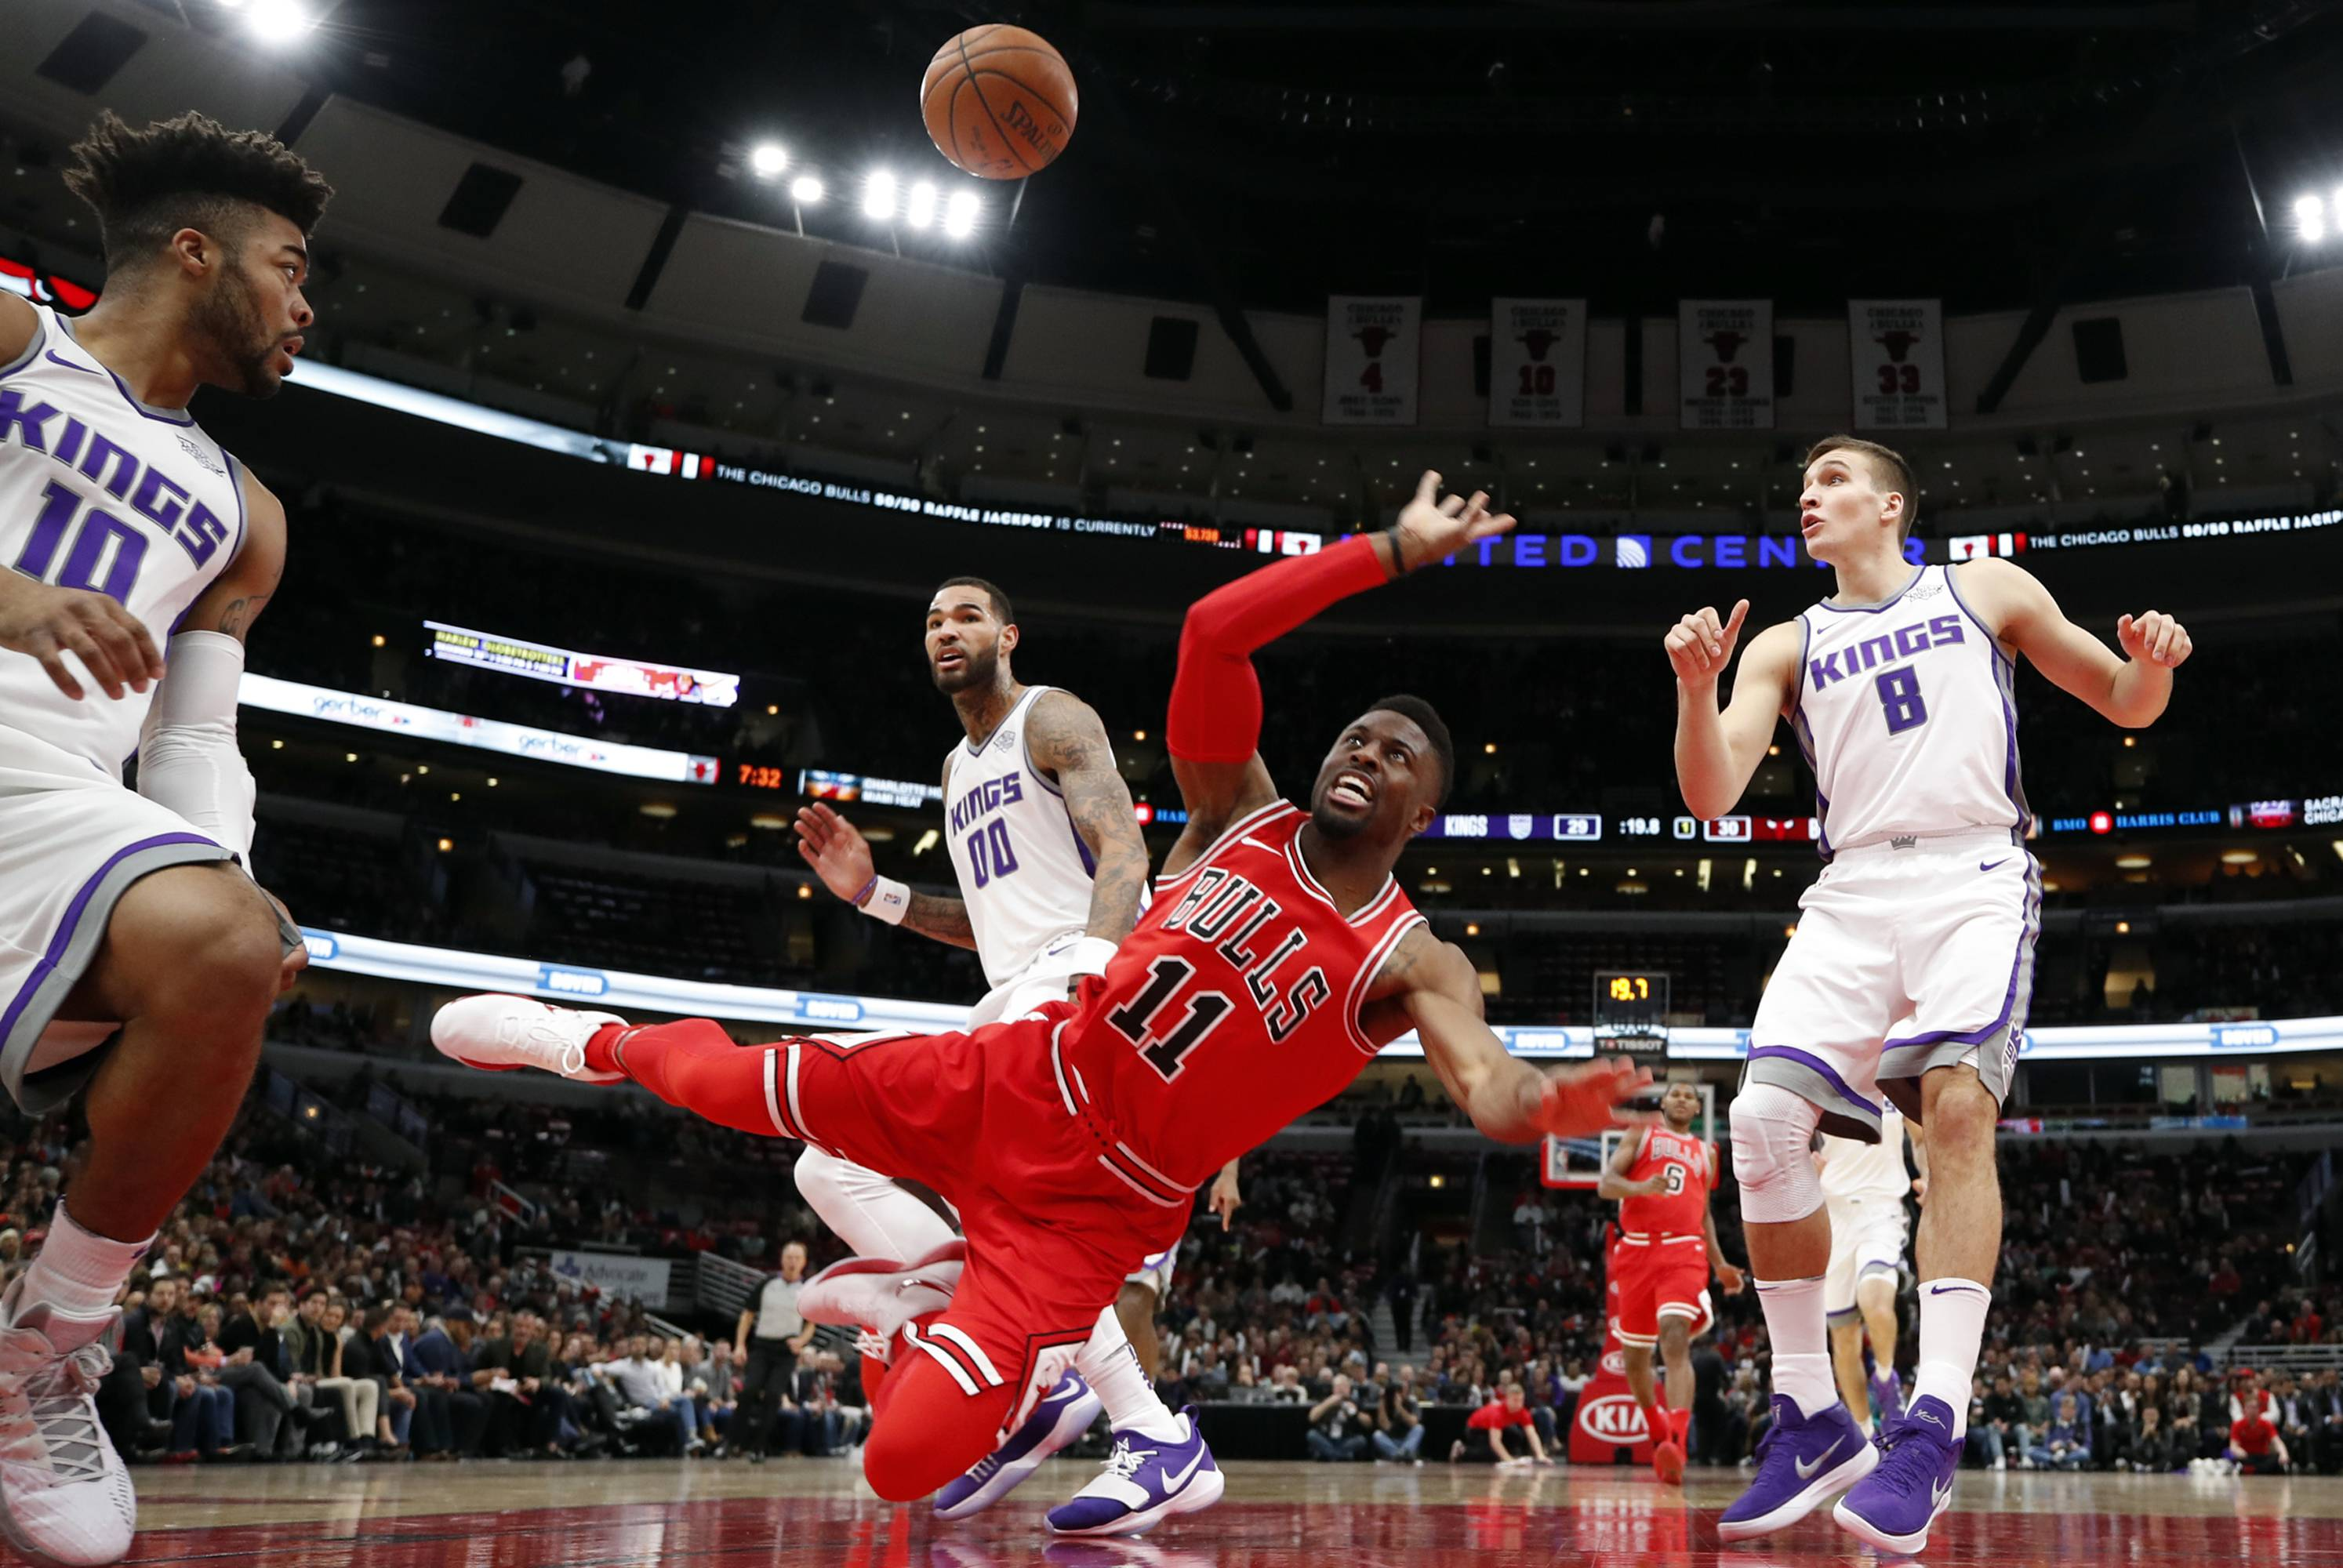 Chicago Bulls guard David Nwaba (11) falls to the floor as he shoots while Sacramento Kings players Frank Mason III (10), Willie Cauley-Stein (00) and Bogdan Bogdanovic (8) watch during the first half of an NBA basketball game in Chicago, Friday, Dec. 1, 2017.